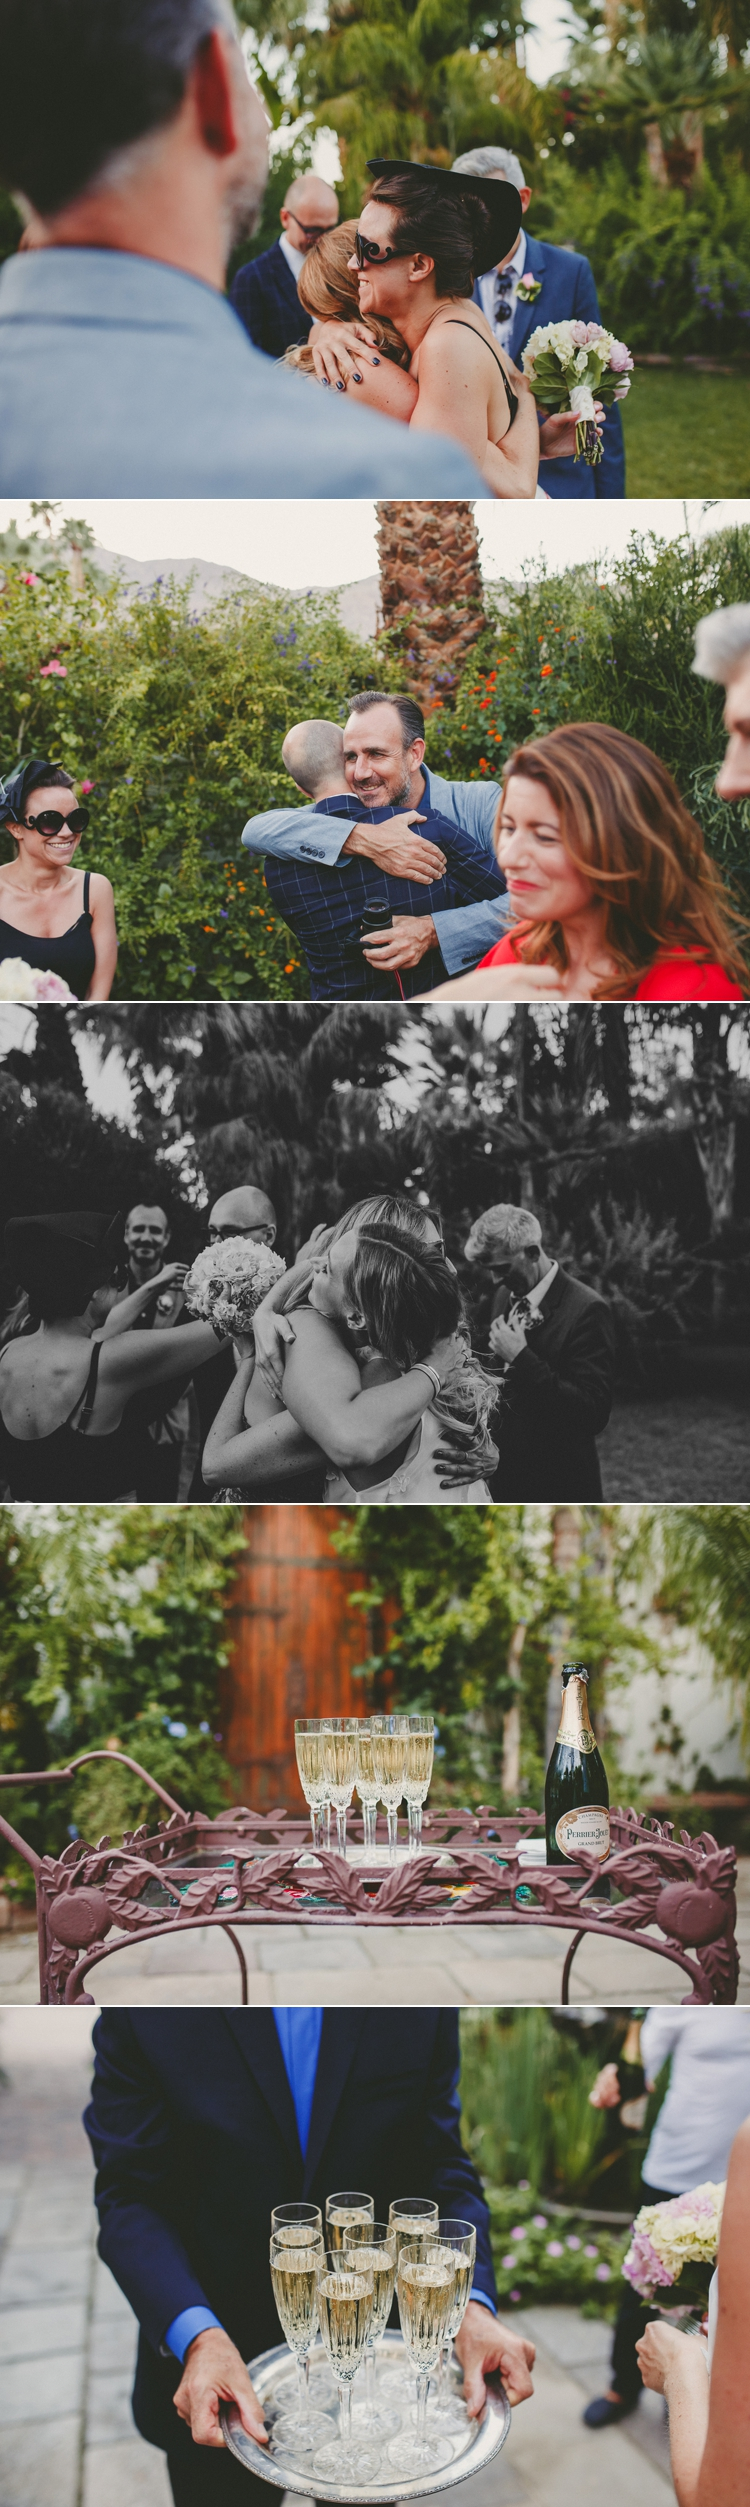 casa-de-monte-vista-wedding-photos-16